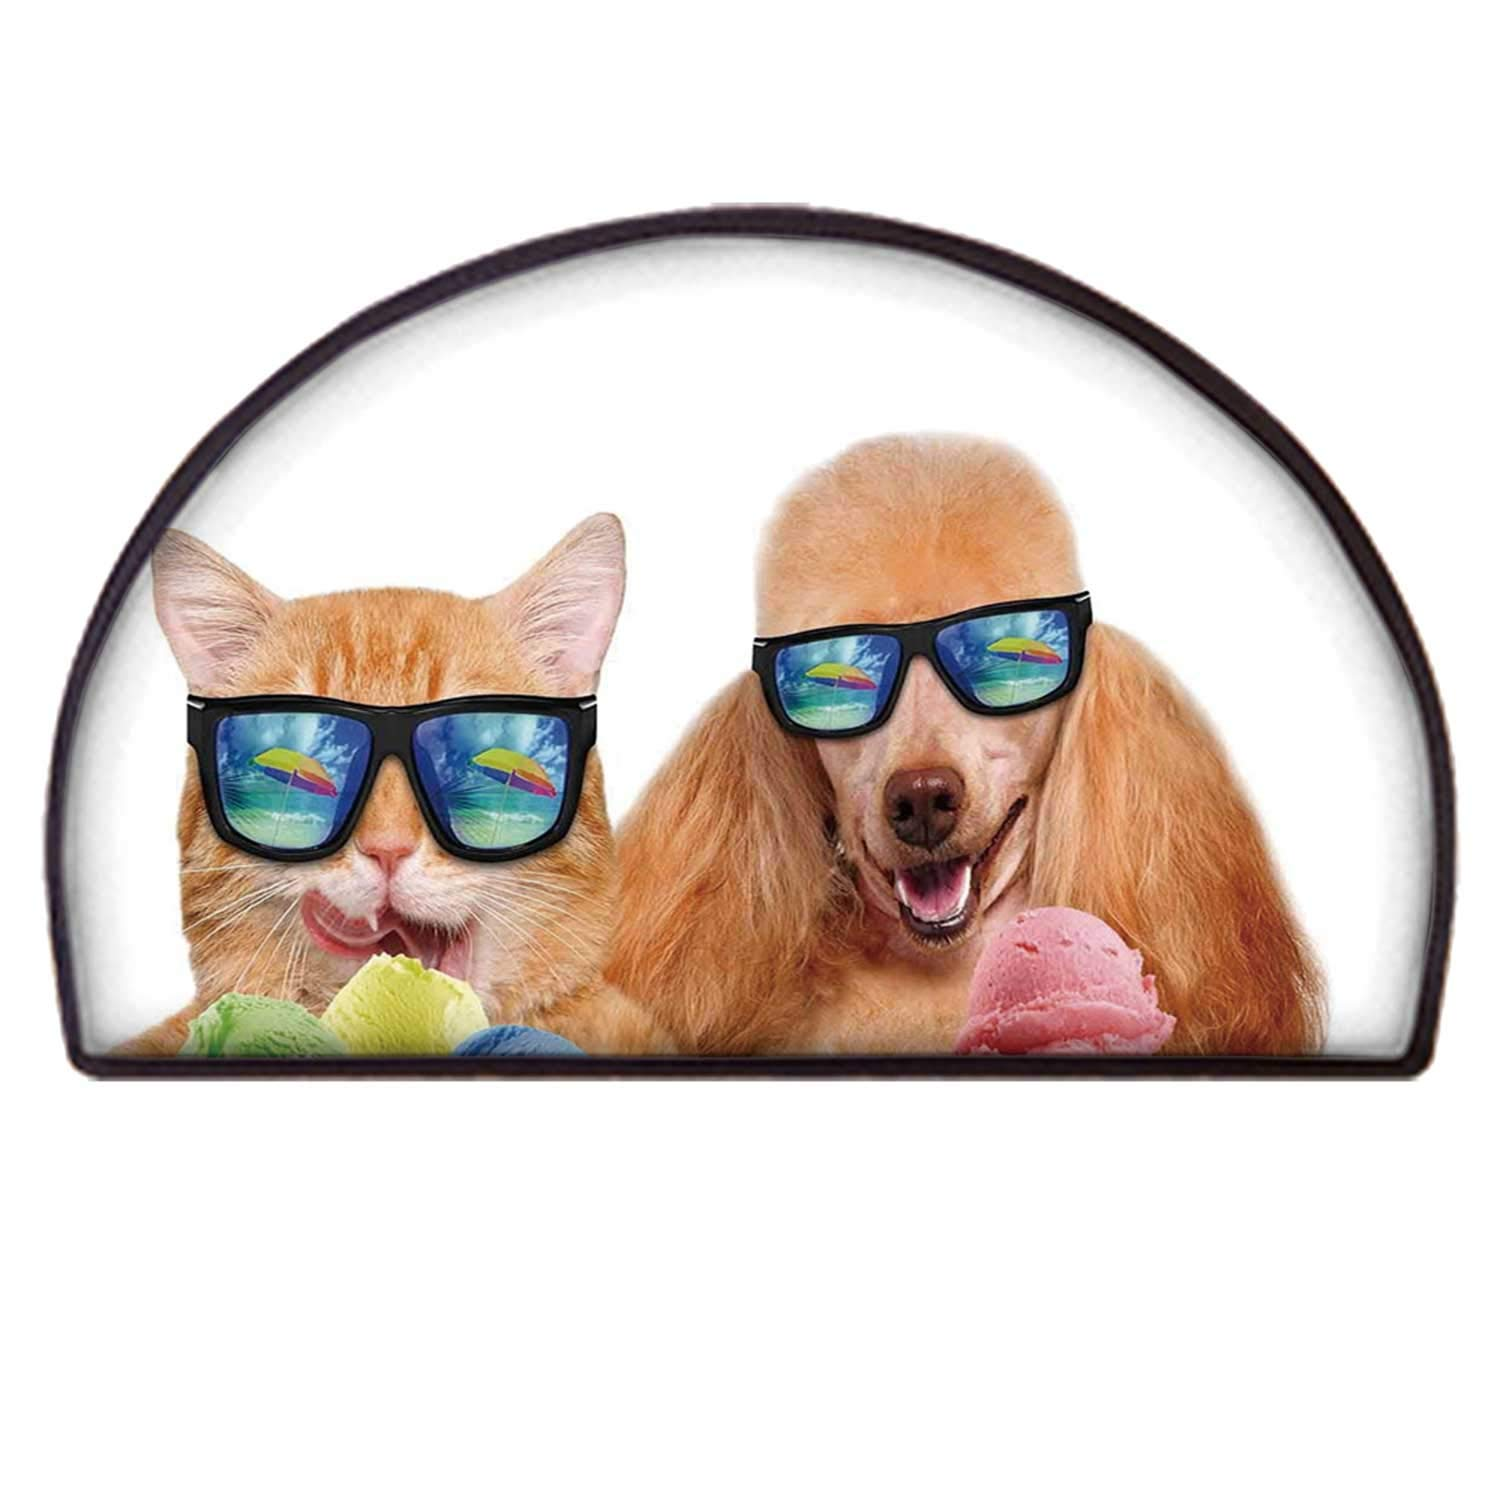 C COABALLA Animal Non Slip Semicircle Mat,Cat Dog Pet with Sunglasses Eating Ice Cream Retro Cool Vintage Pop Artwork Image for Indoor,90 x 180cm / 35.43 x 70.86 inch by C COABALLA